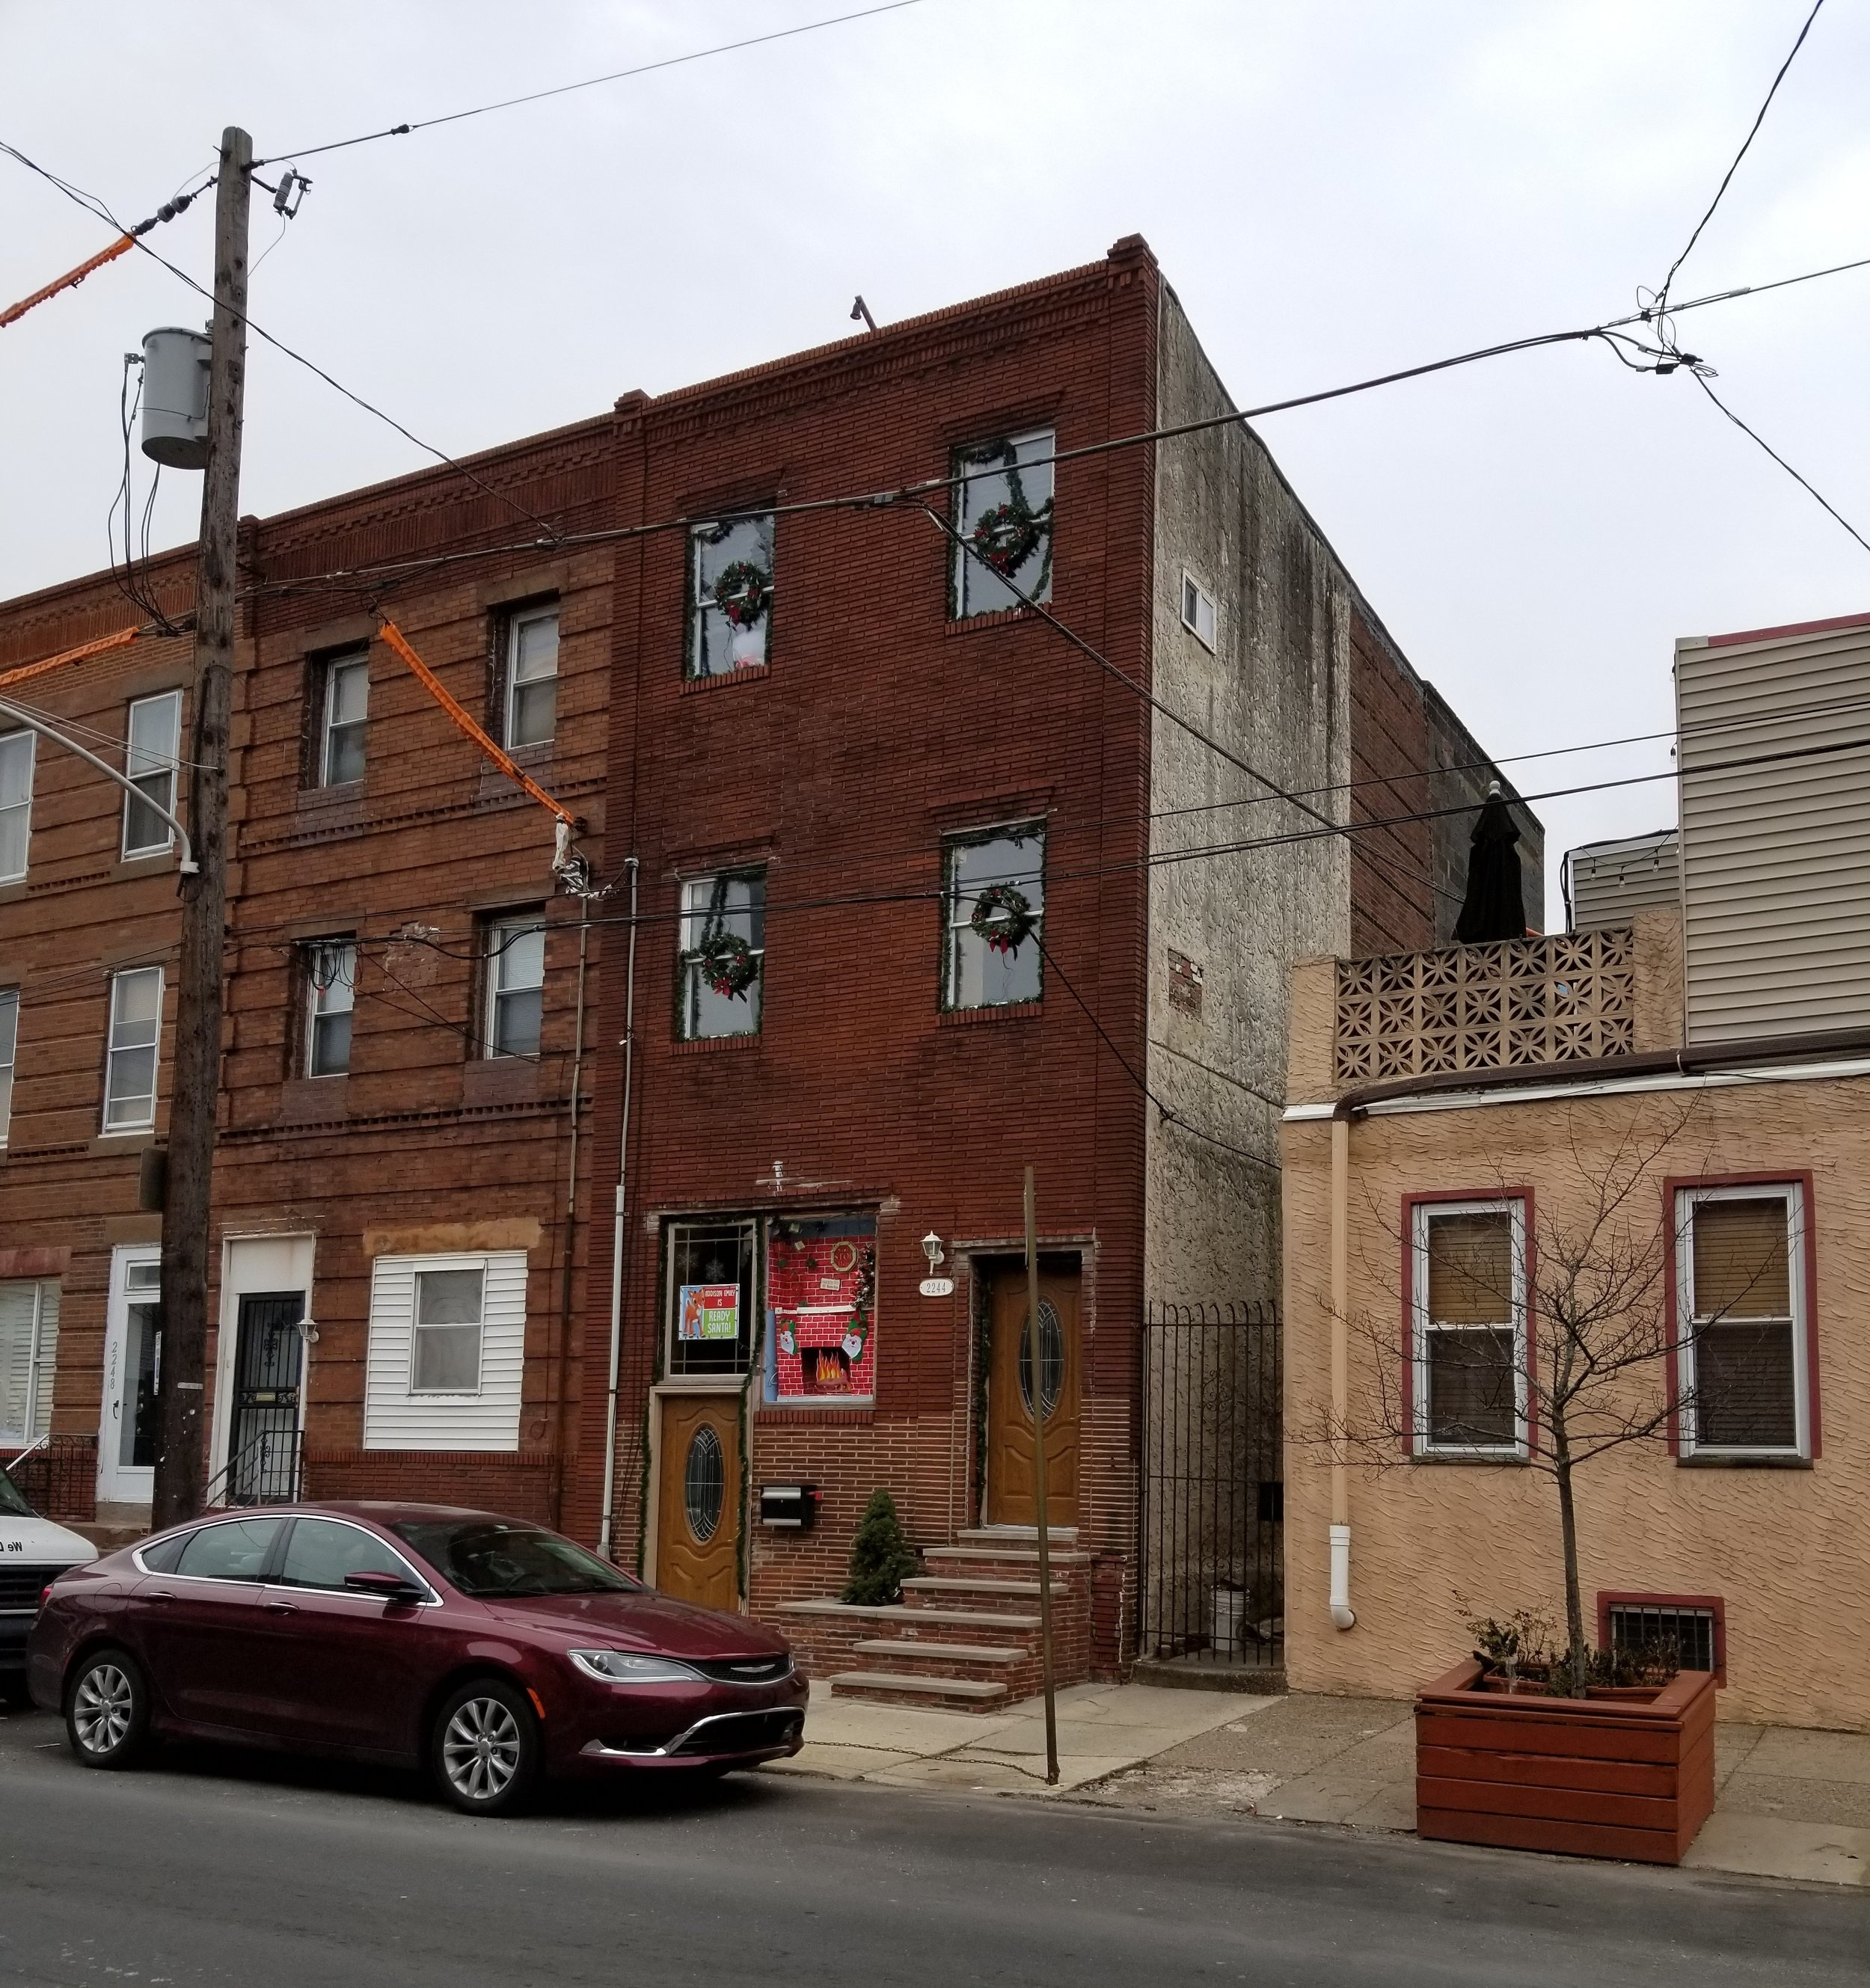 See, they even have cardboard chimneys in South Philly!